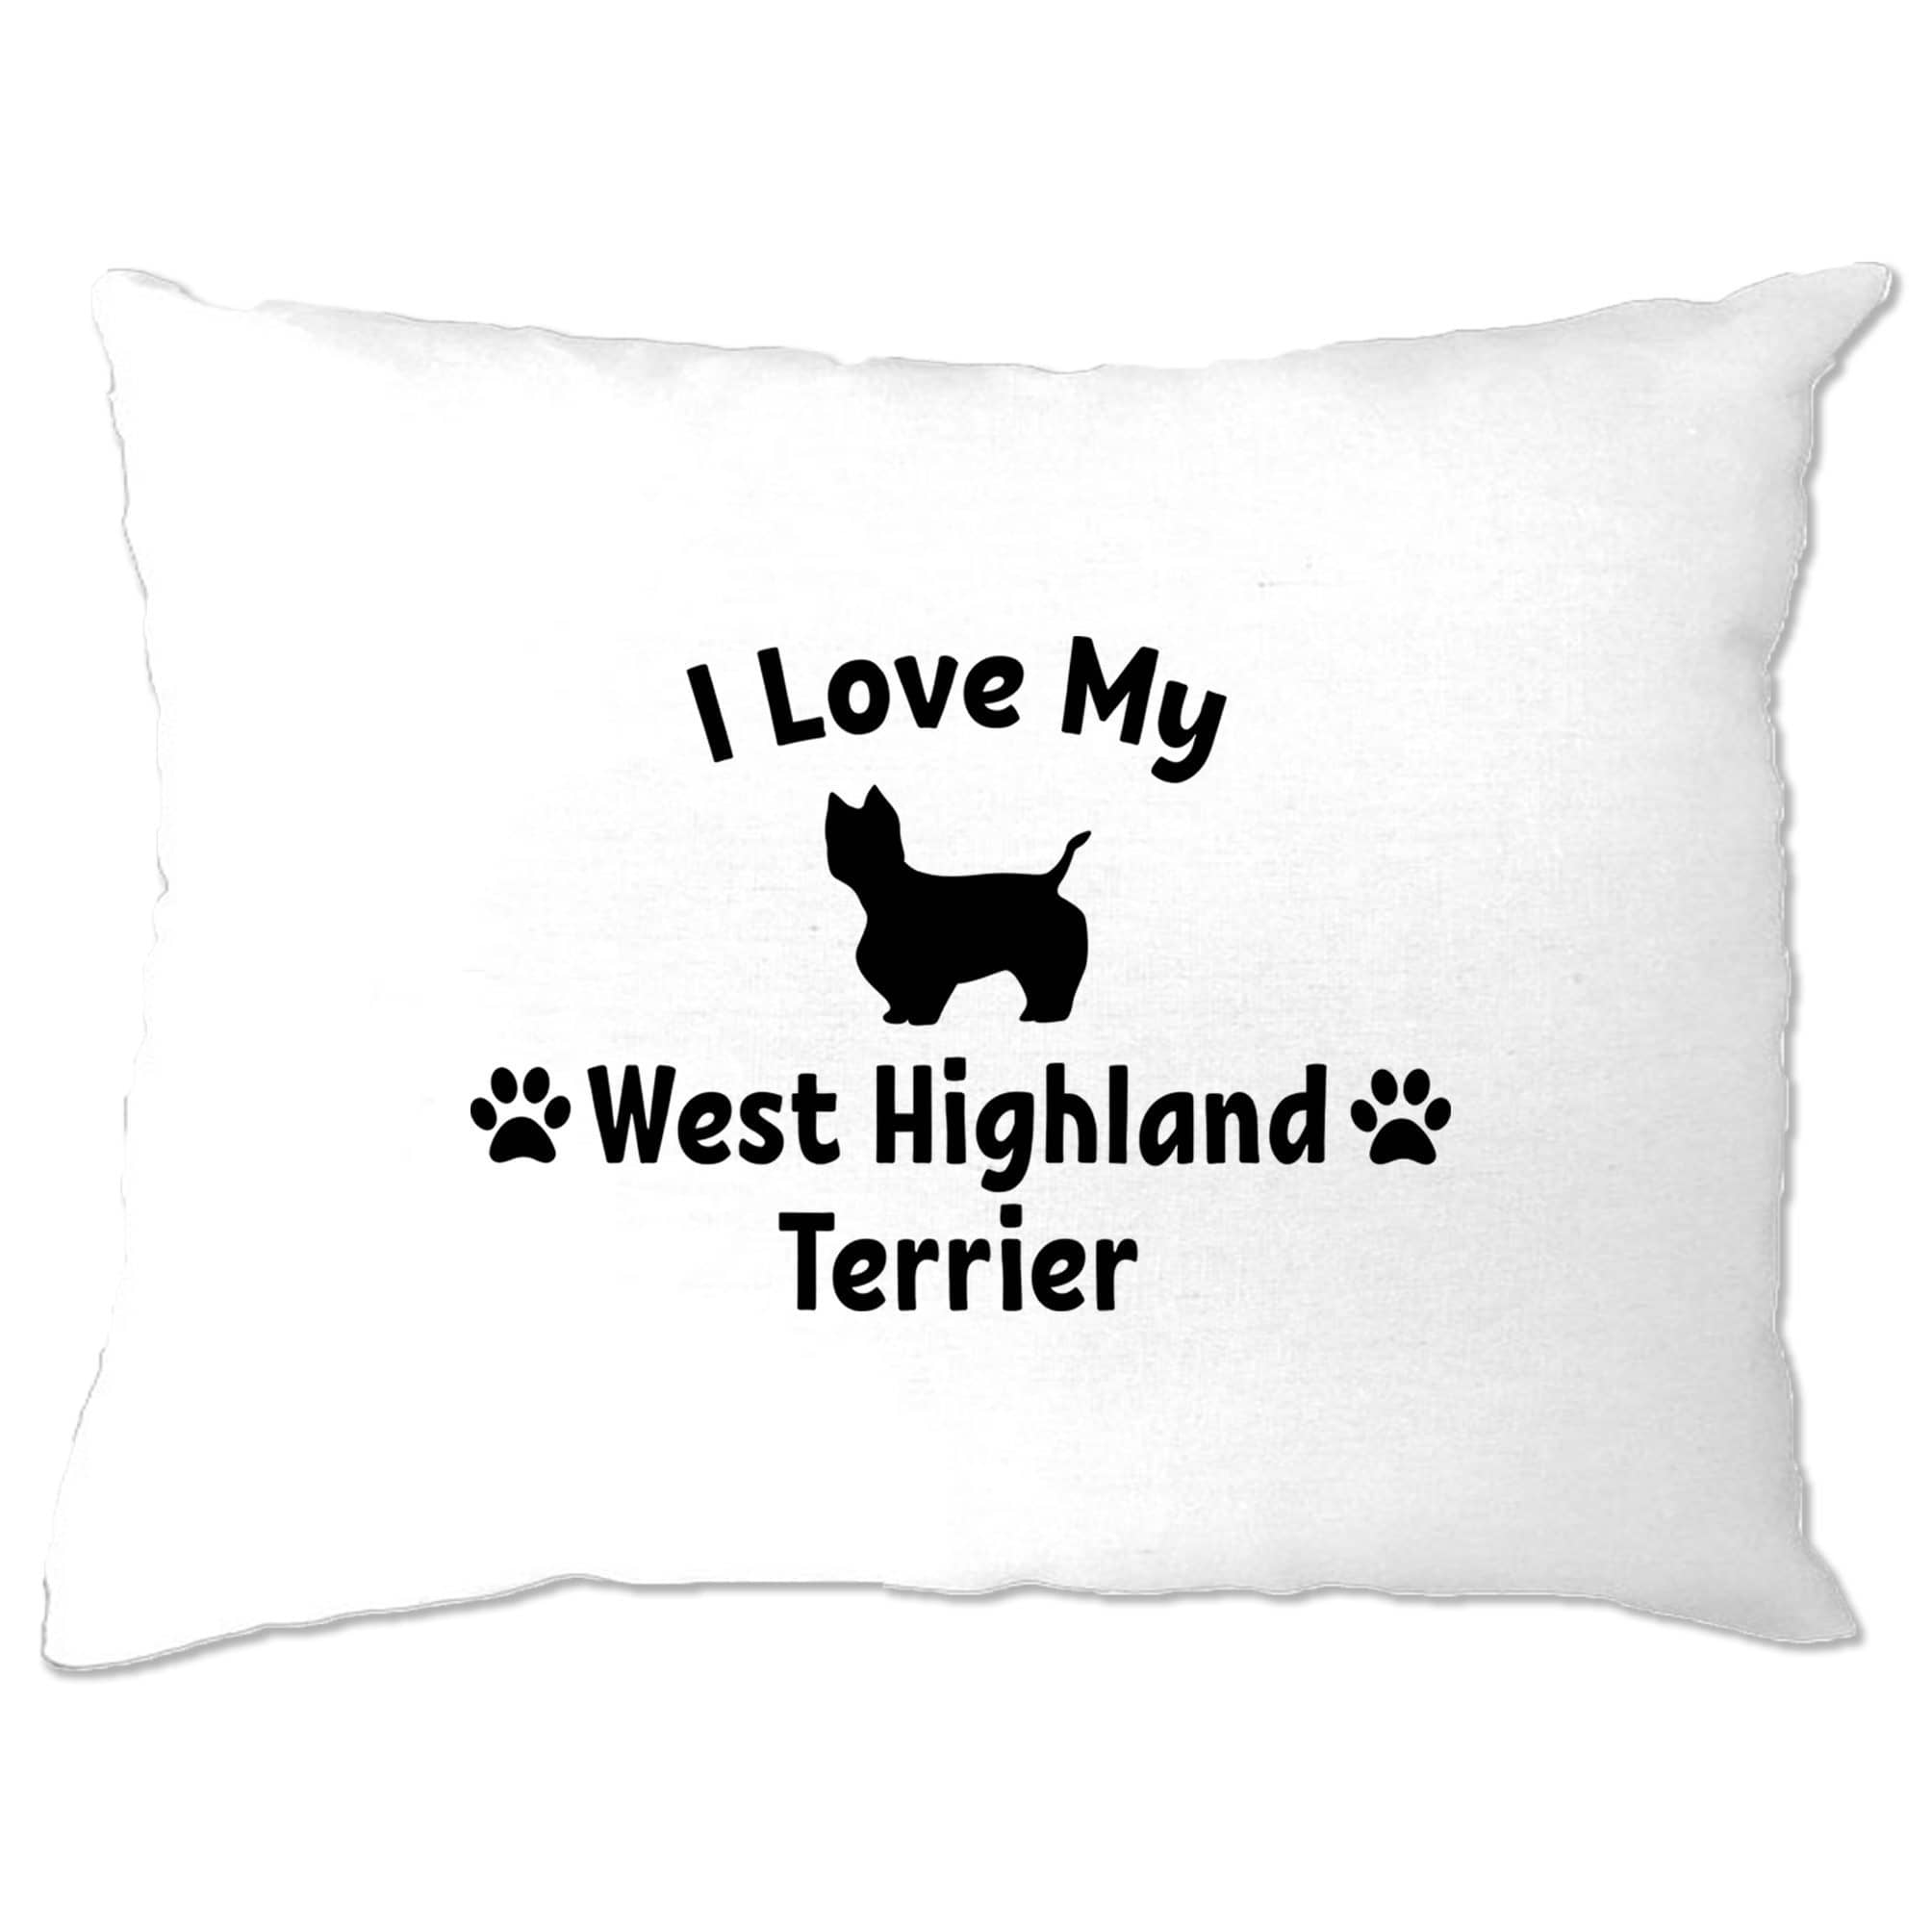 Dog Owner Pillow Case I Love My West Highland Terrier